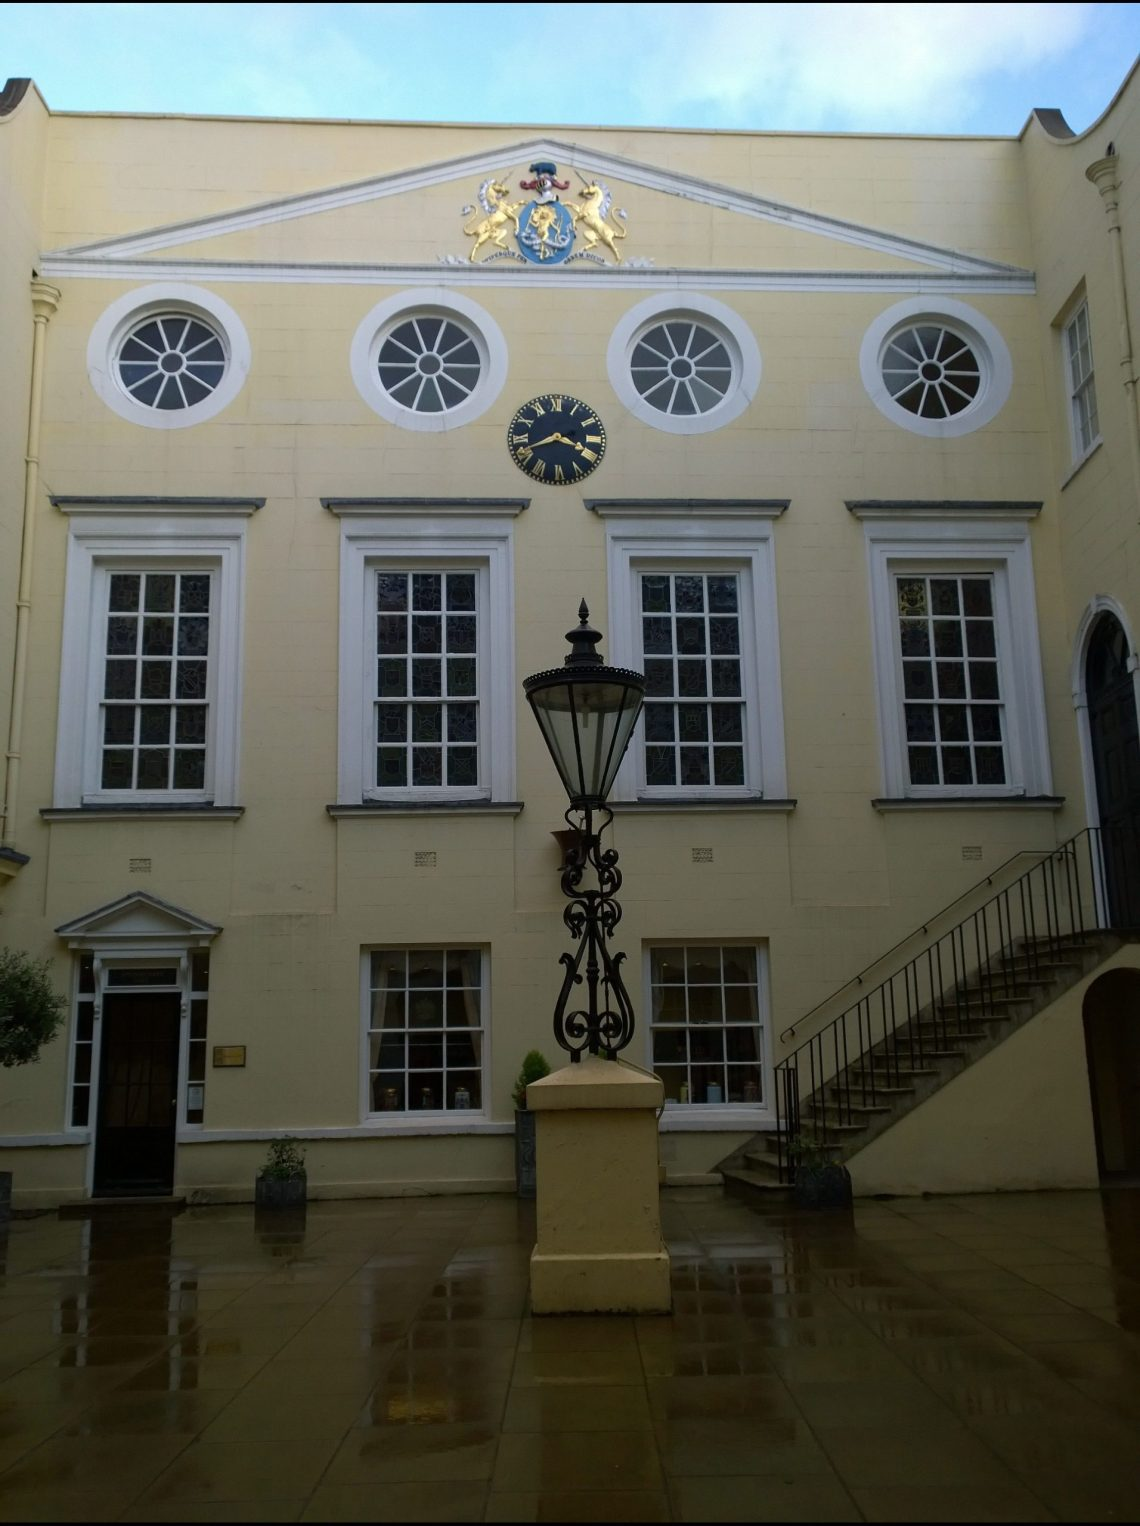 The Apothecaries Hall on the site of the former Blackfriars Monastery